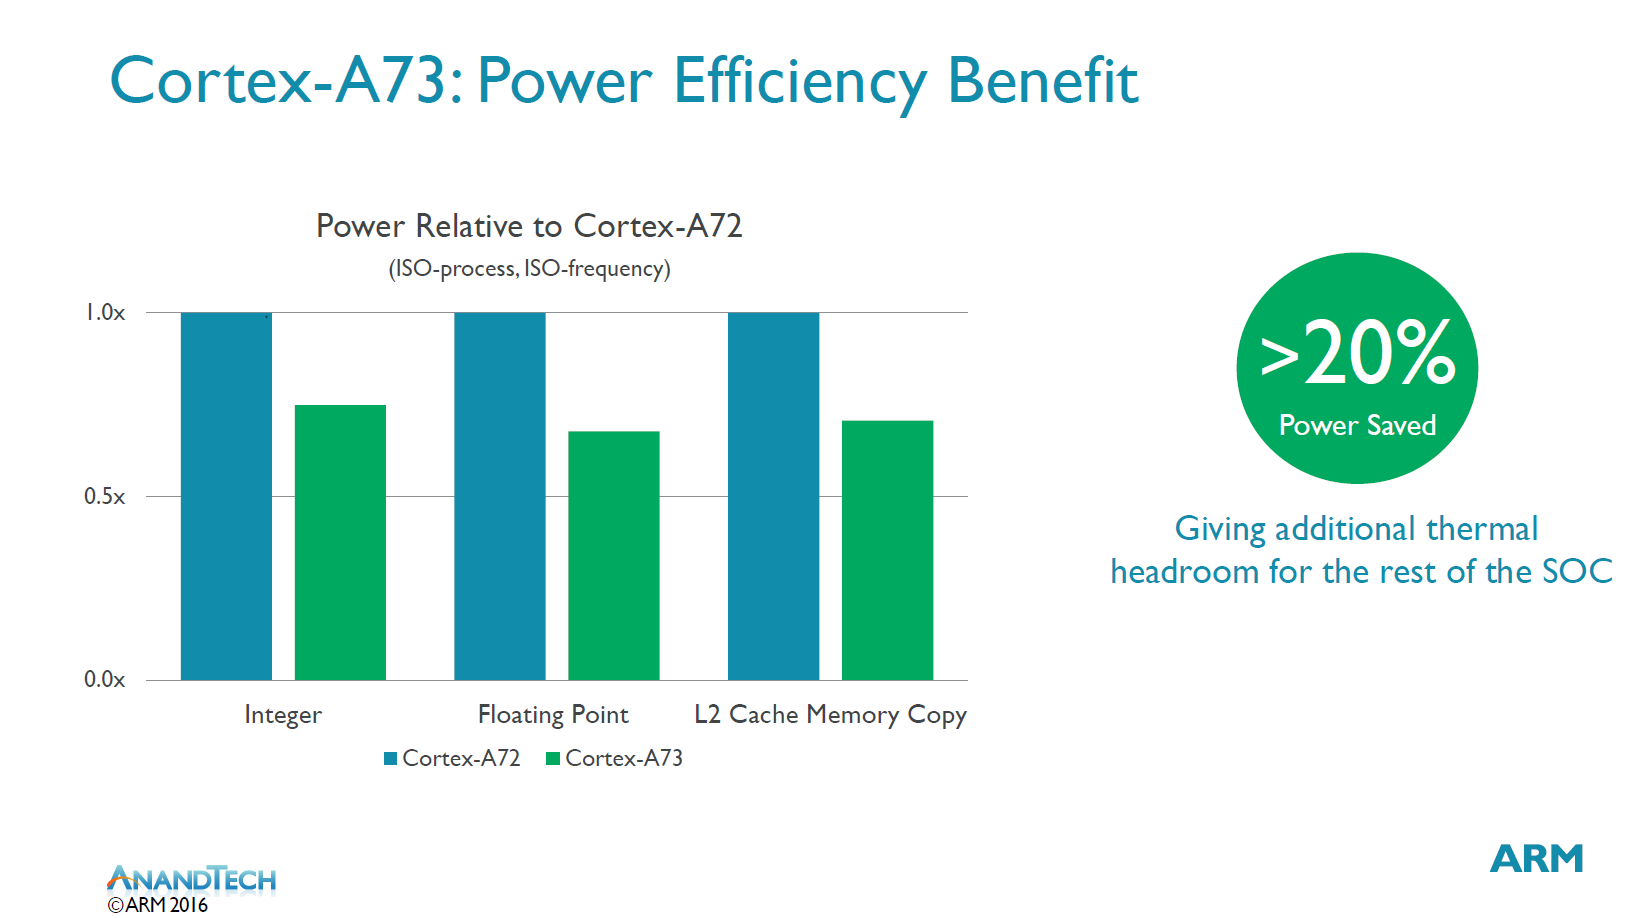 Performance, Power, Area & Closing Thoughts - The ARM Cortex A73